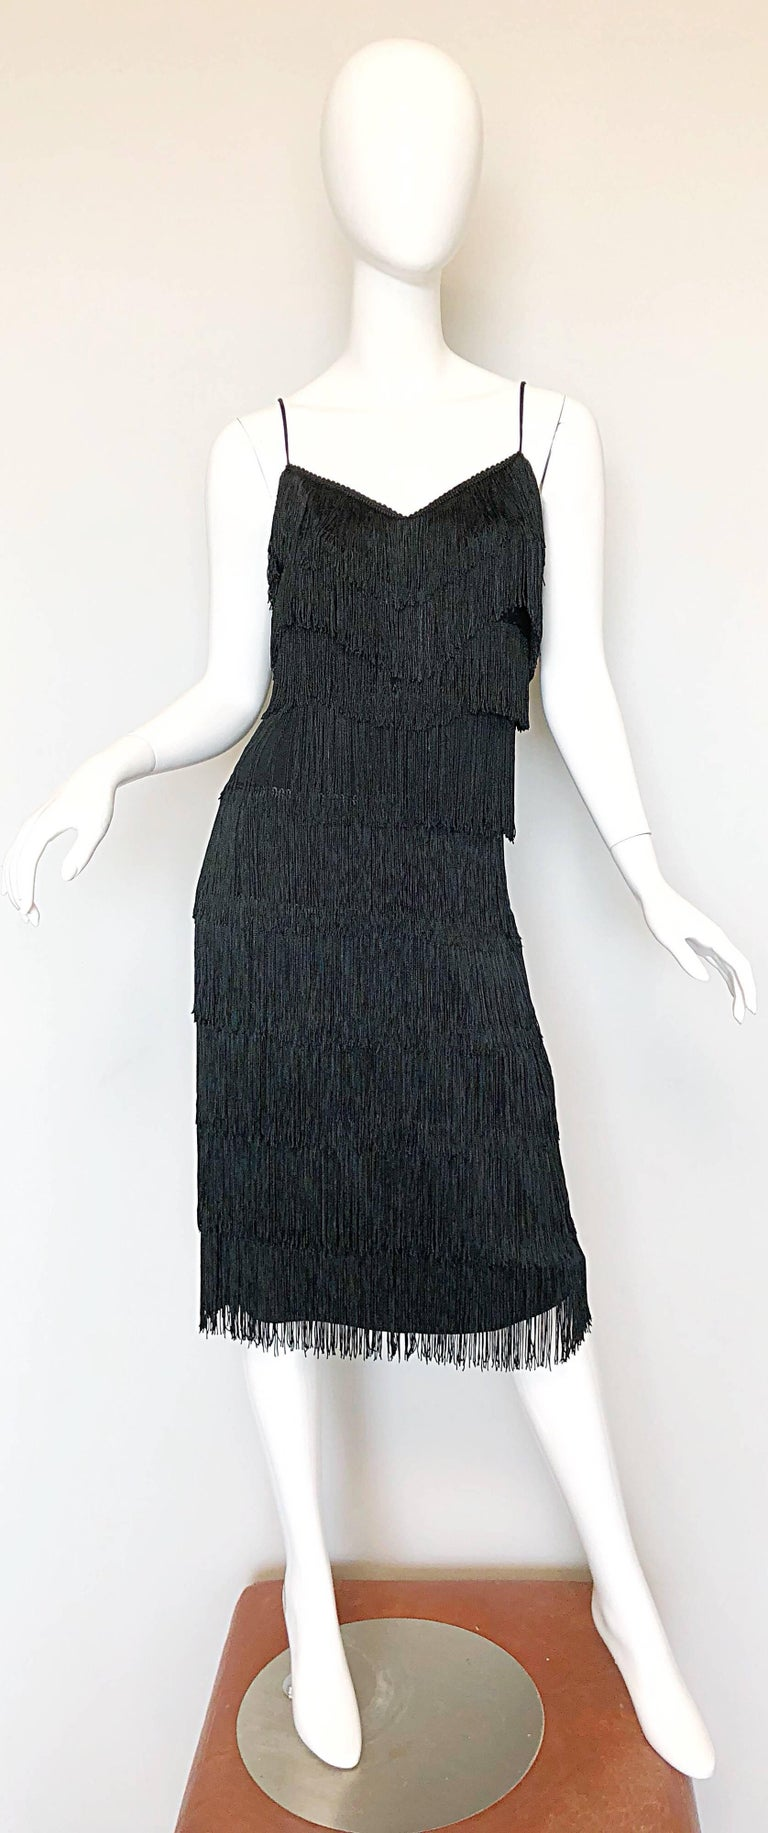 Fabulous mid 1970s does 1920s LILLI DIAMOND black fully fringed flapper style jersey cocktail dress! Words cannot even begin to describe how utterly gorgeous and flattering this dress is in person! Layers and layers of fringe look fantastic with